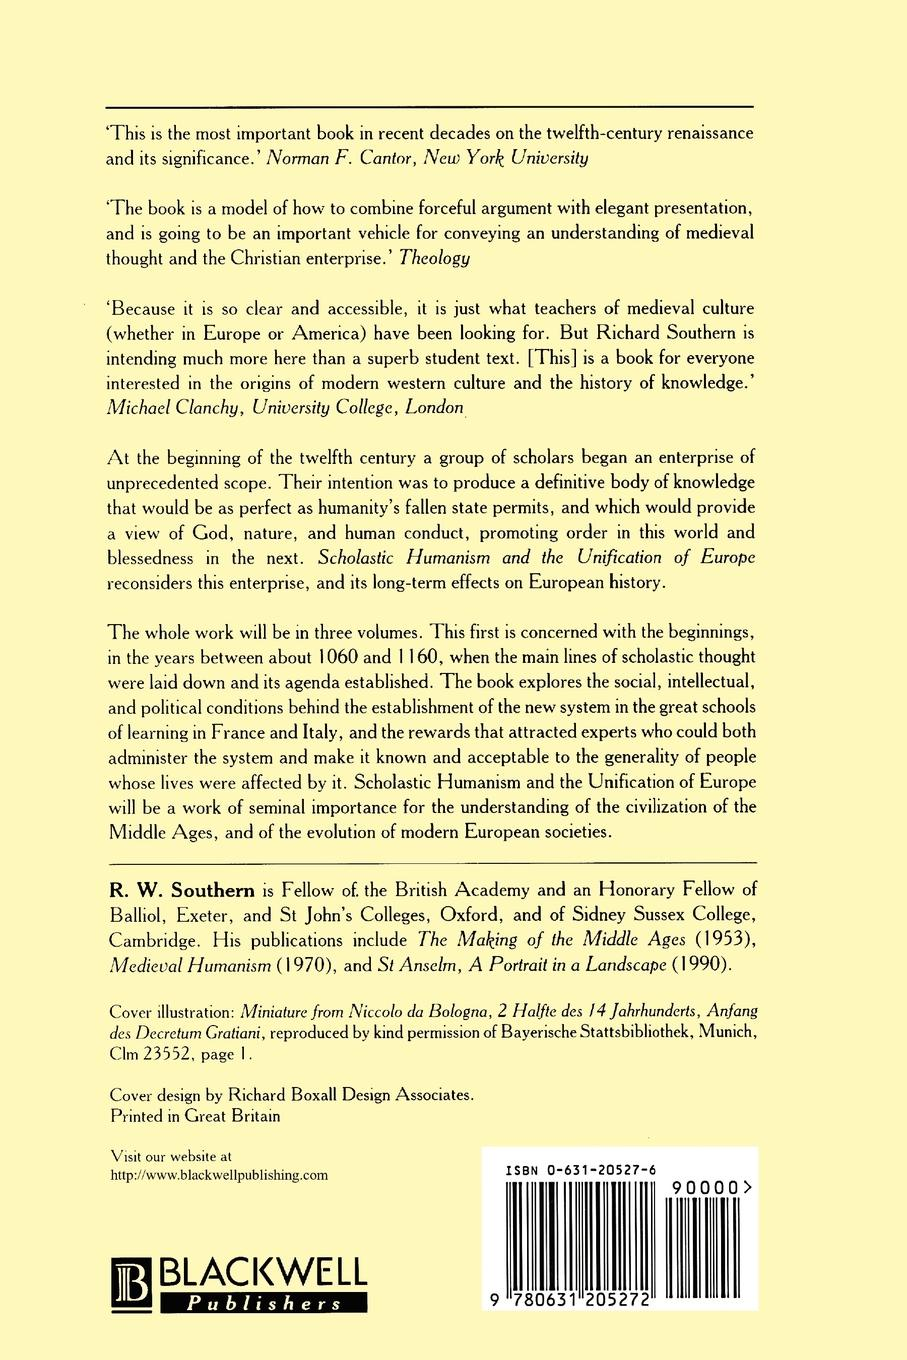 R. W. Southern, Richard Southern Scholastic Humanism and the Unification of Europe. Foundations